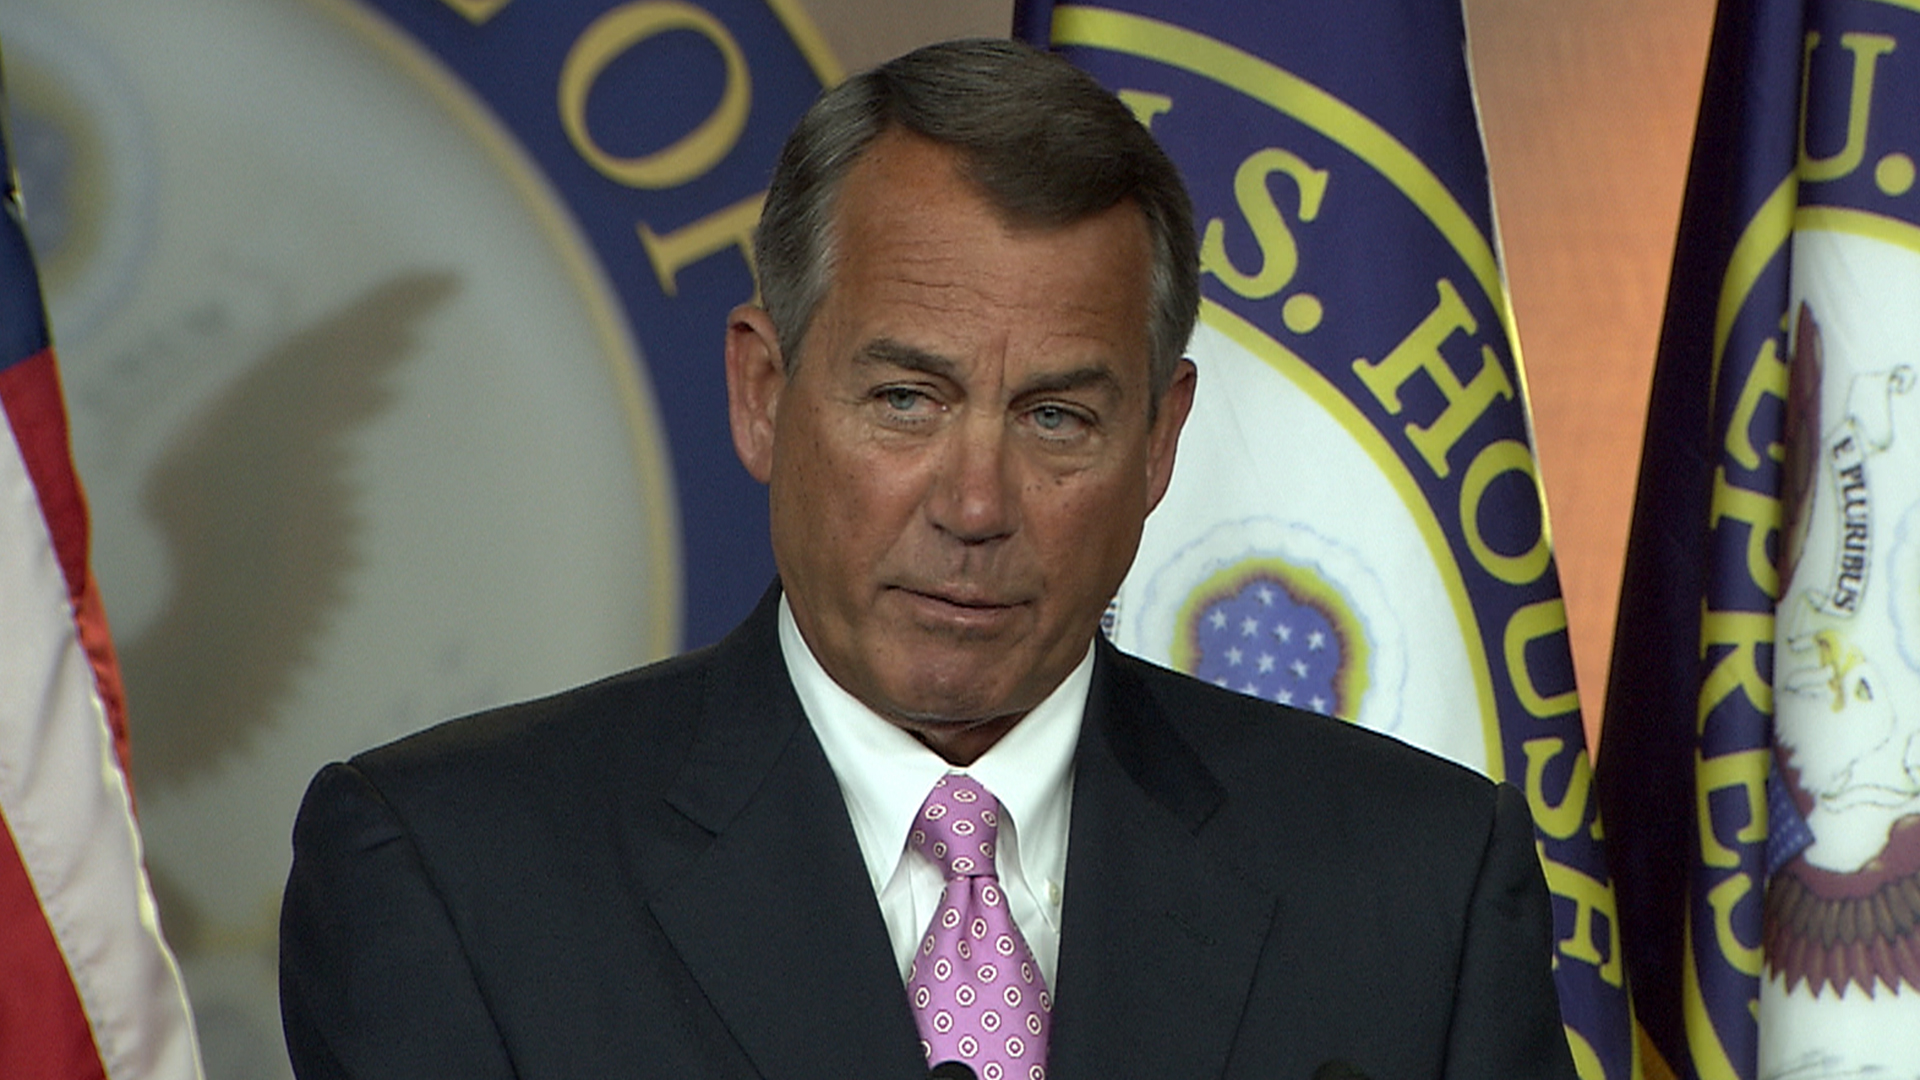 House Speaker John Boehner says the US has the best health care system in the world